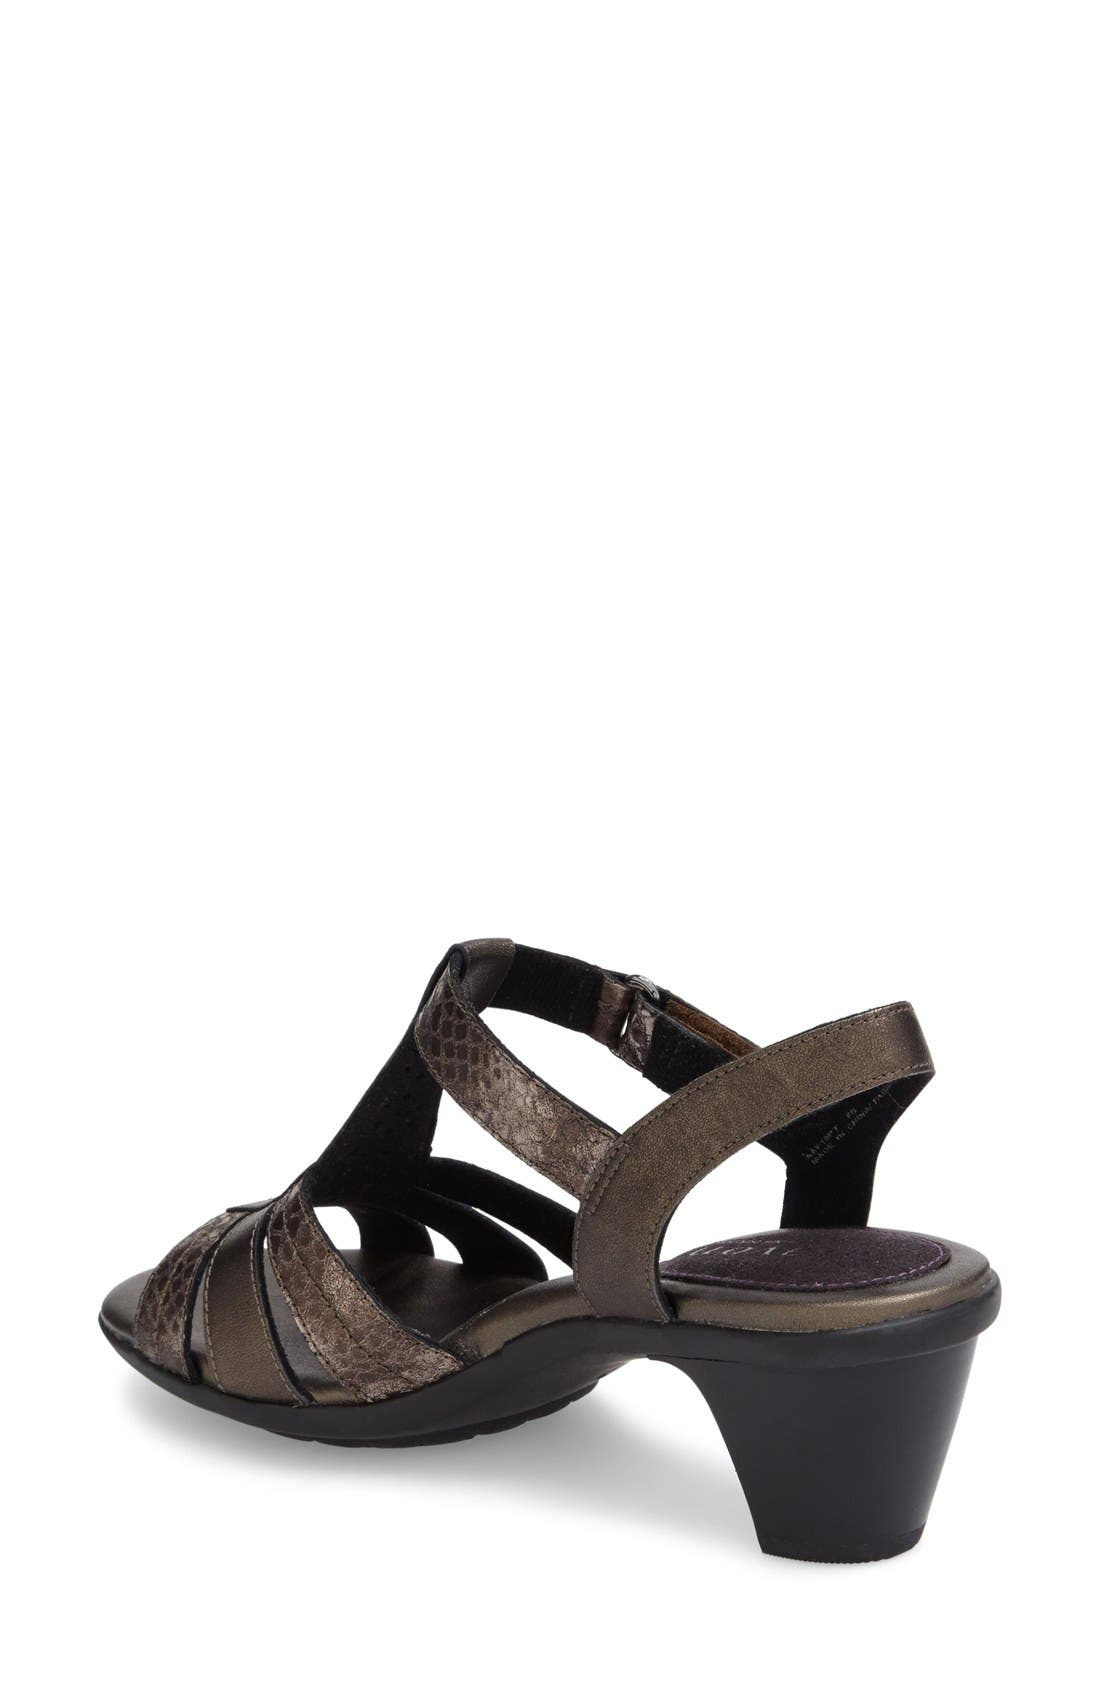 Alternate Image 2  - Aravon 'Mary' T-Strap Sandal (Women)